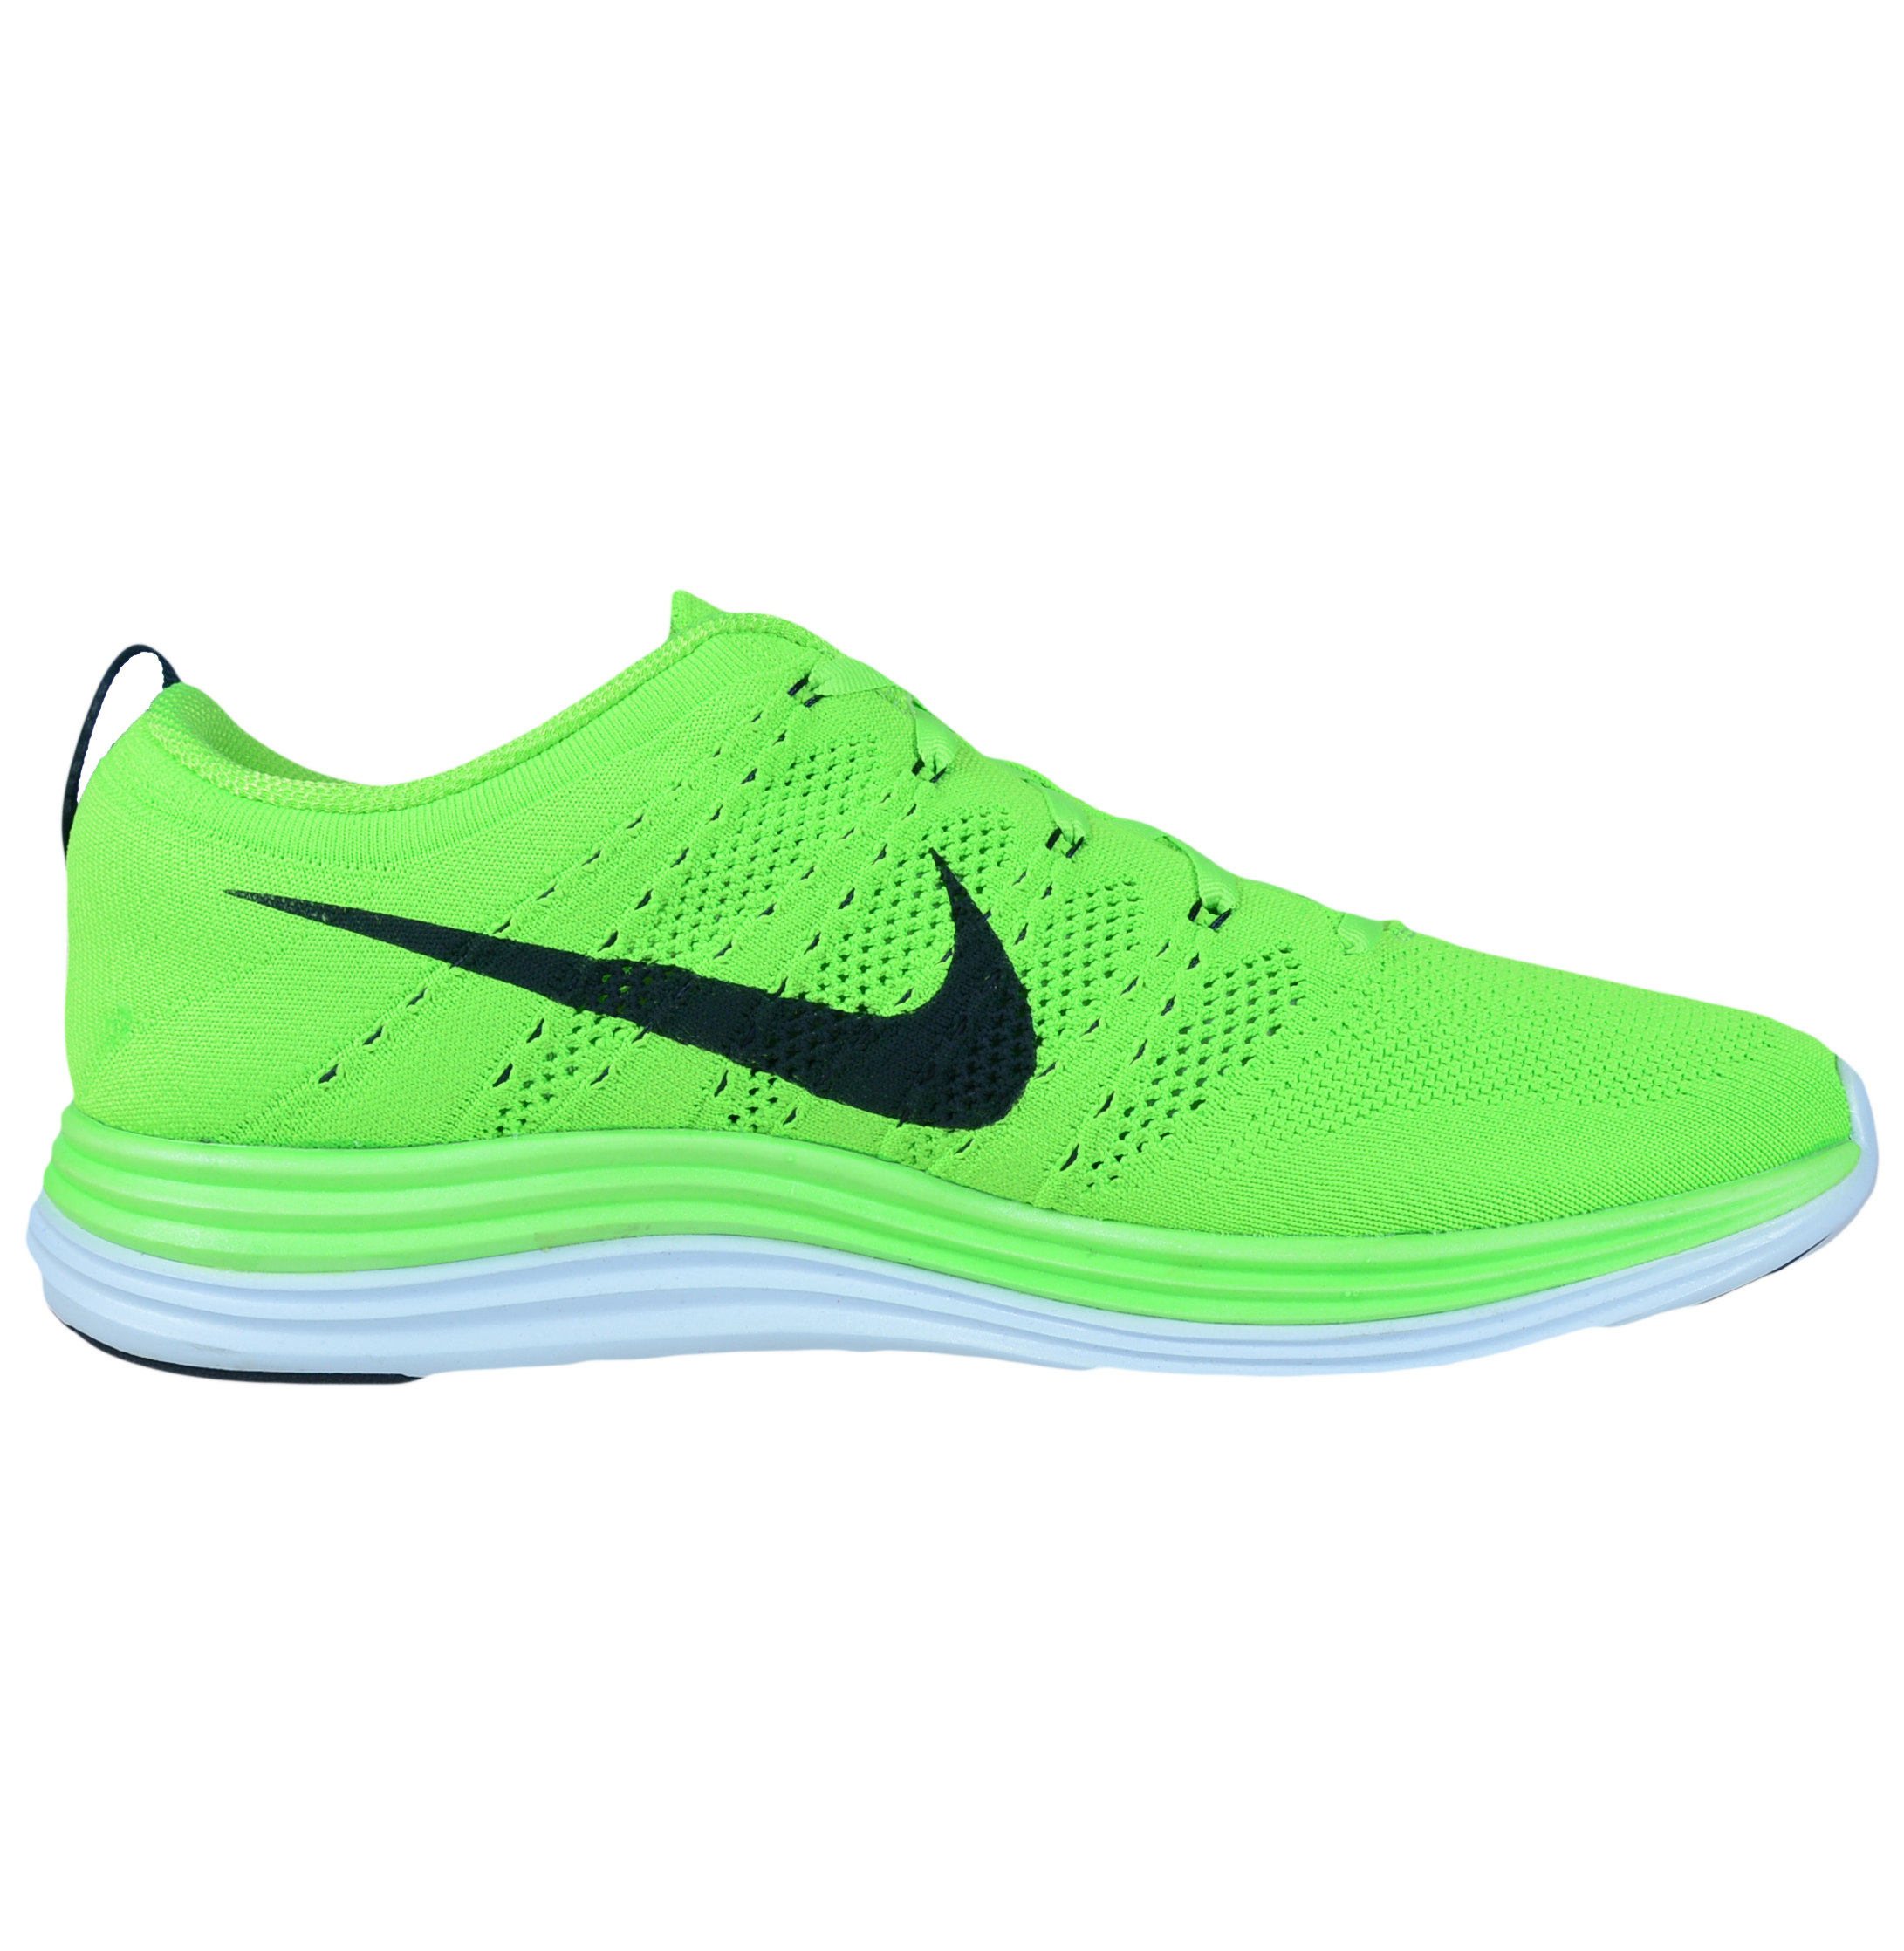 new arrival 21717 c3b46 ... Men s Flyknit Lunar1 ELECTRIC GREEN DARK OBSIDIAN-BLUE TINT M77JHOGJQ NIKE  FLYKNIT LUNAR1+ RUNNING SHOES ELECTRIC GREEN DARK OBSIDIAN 554887 304 ...